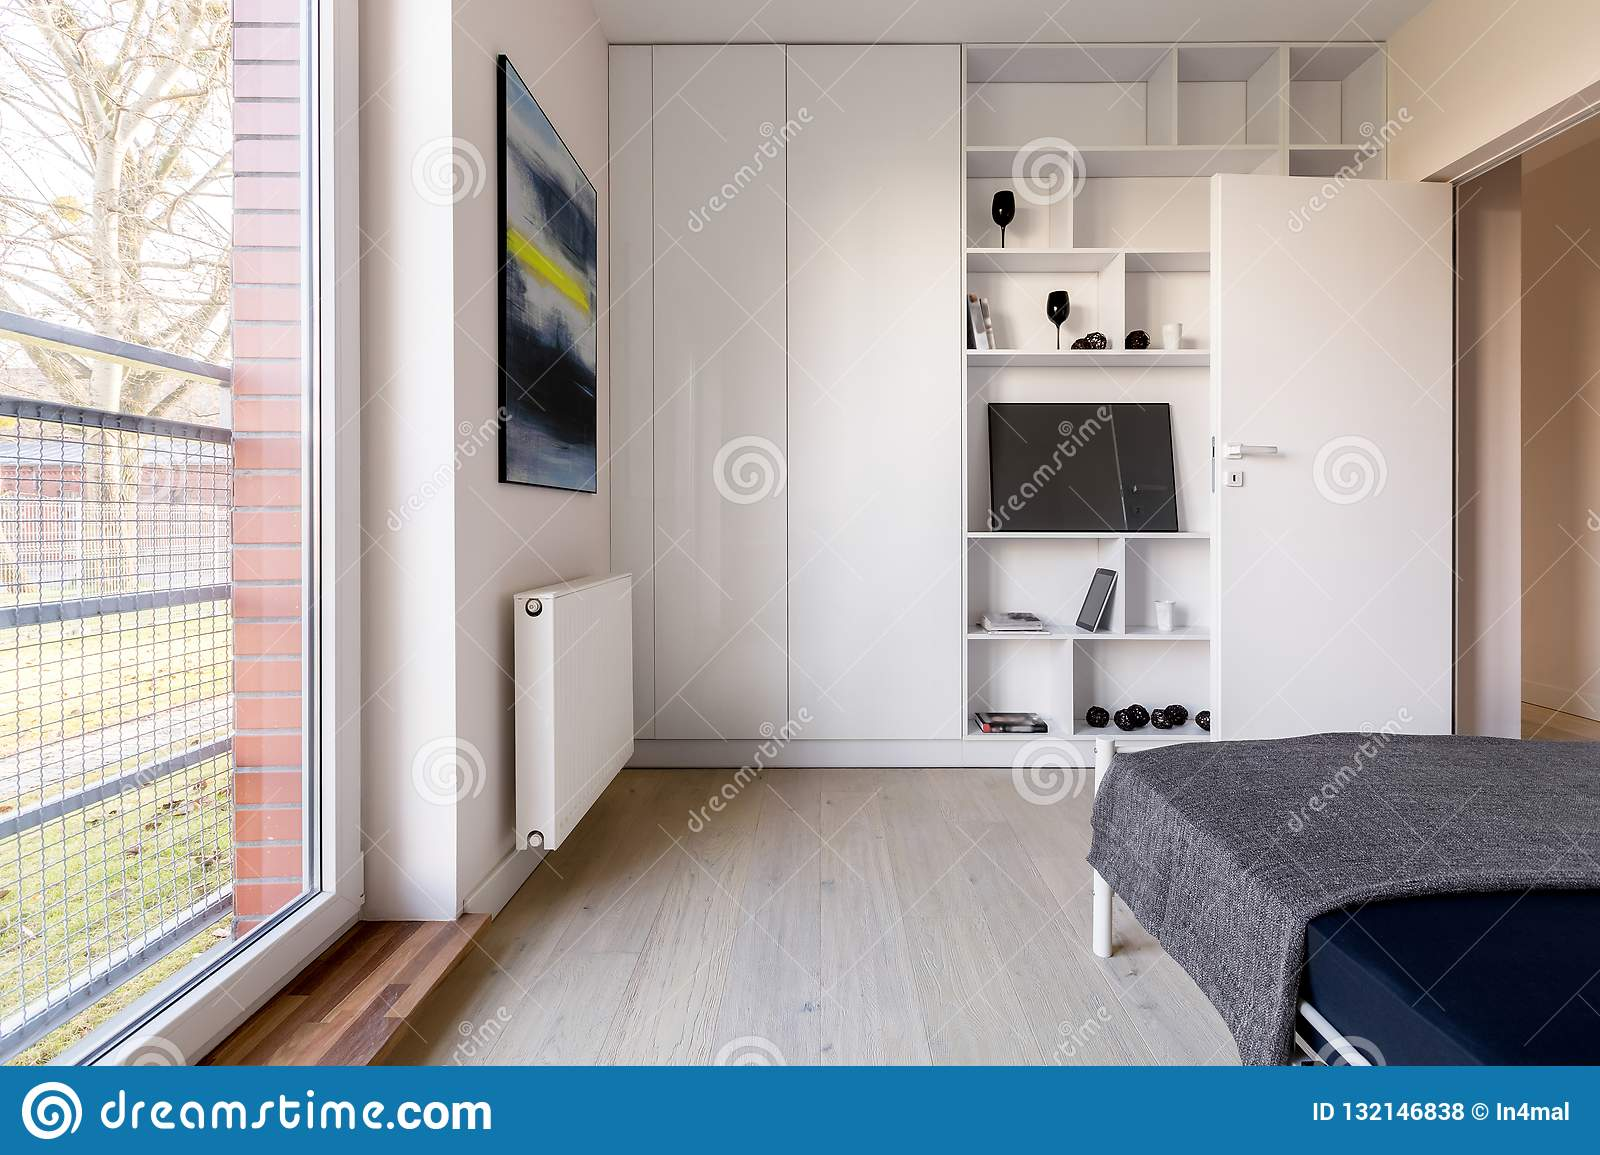 Bedroom With Bookcase And Wardrobe Stock Photo